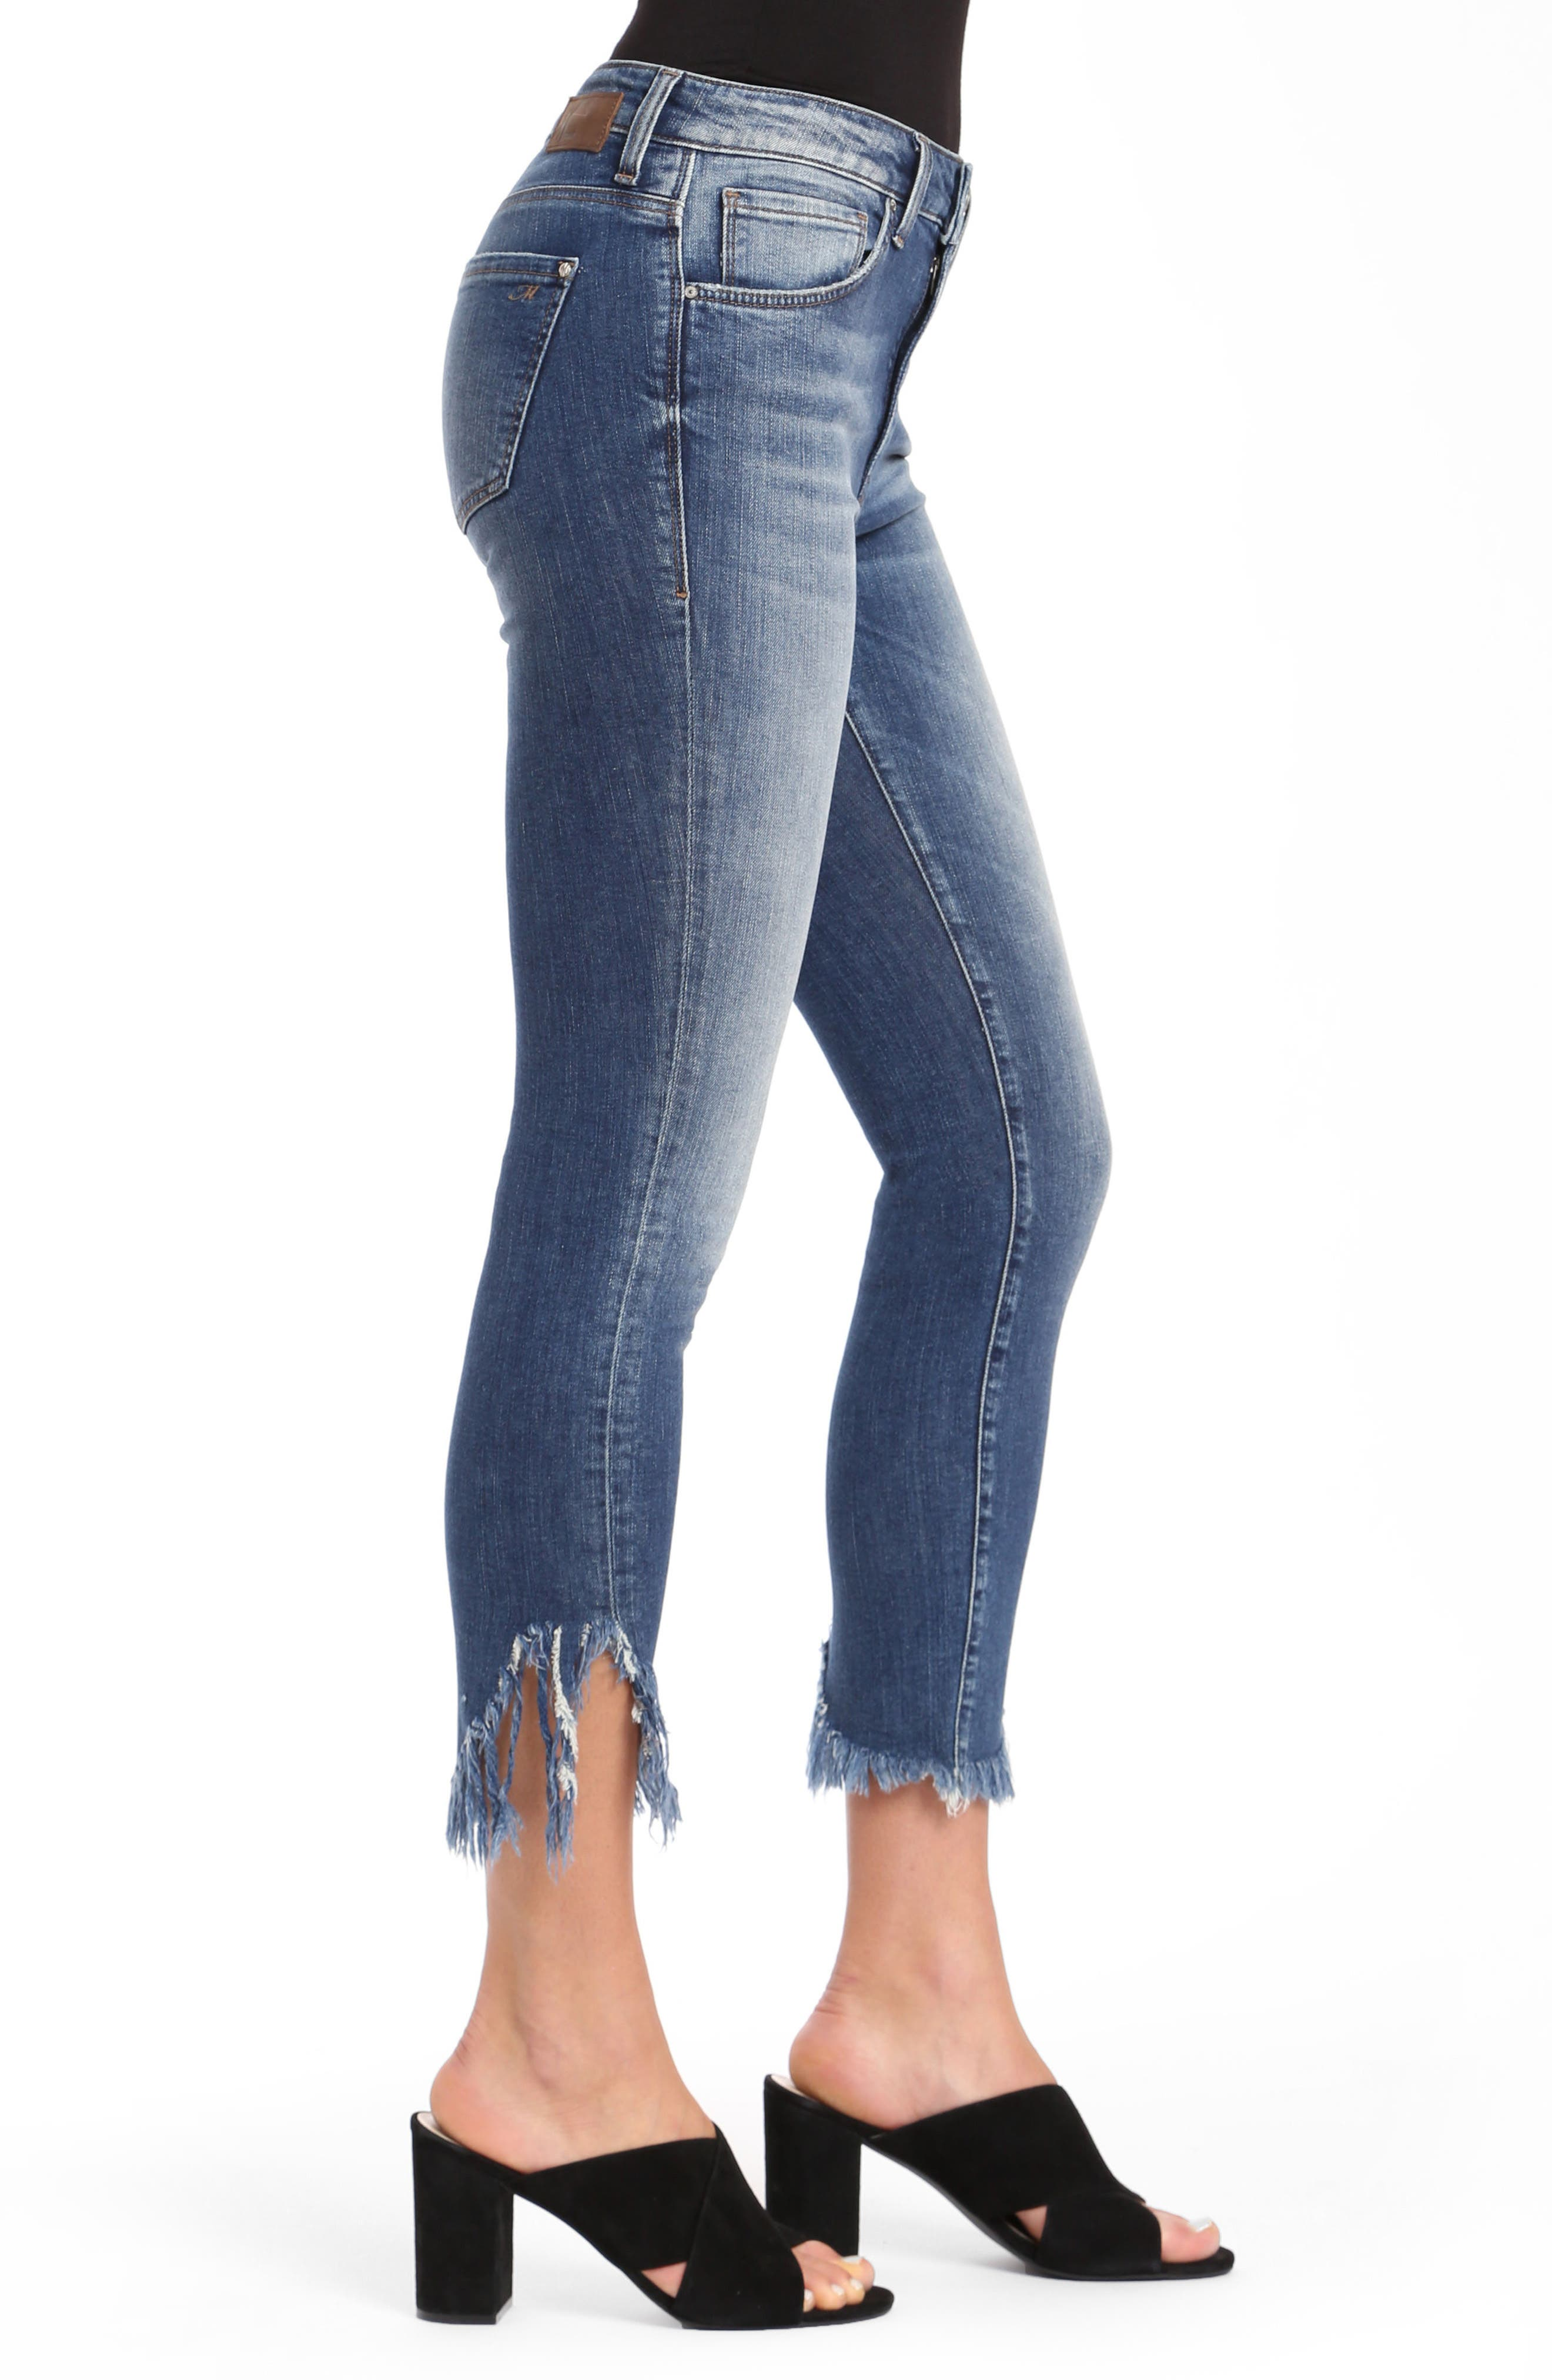 Tess Extreme Ripped Super Skinny Jeans,                             Alternate thumbnail 3, color,                             EXTREME RIPPED VINTAGE